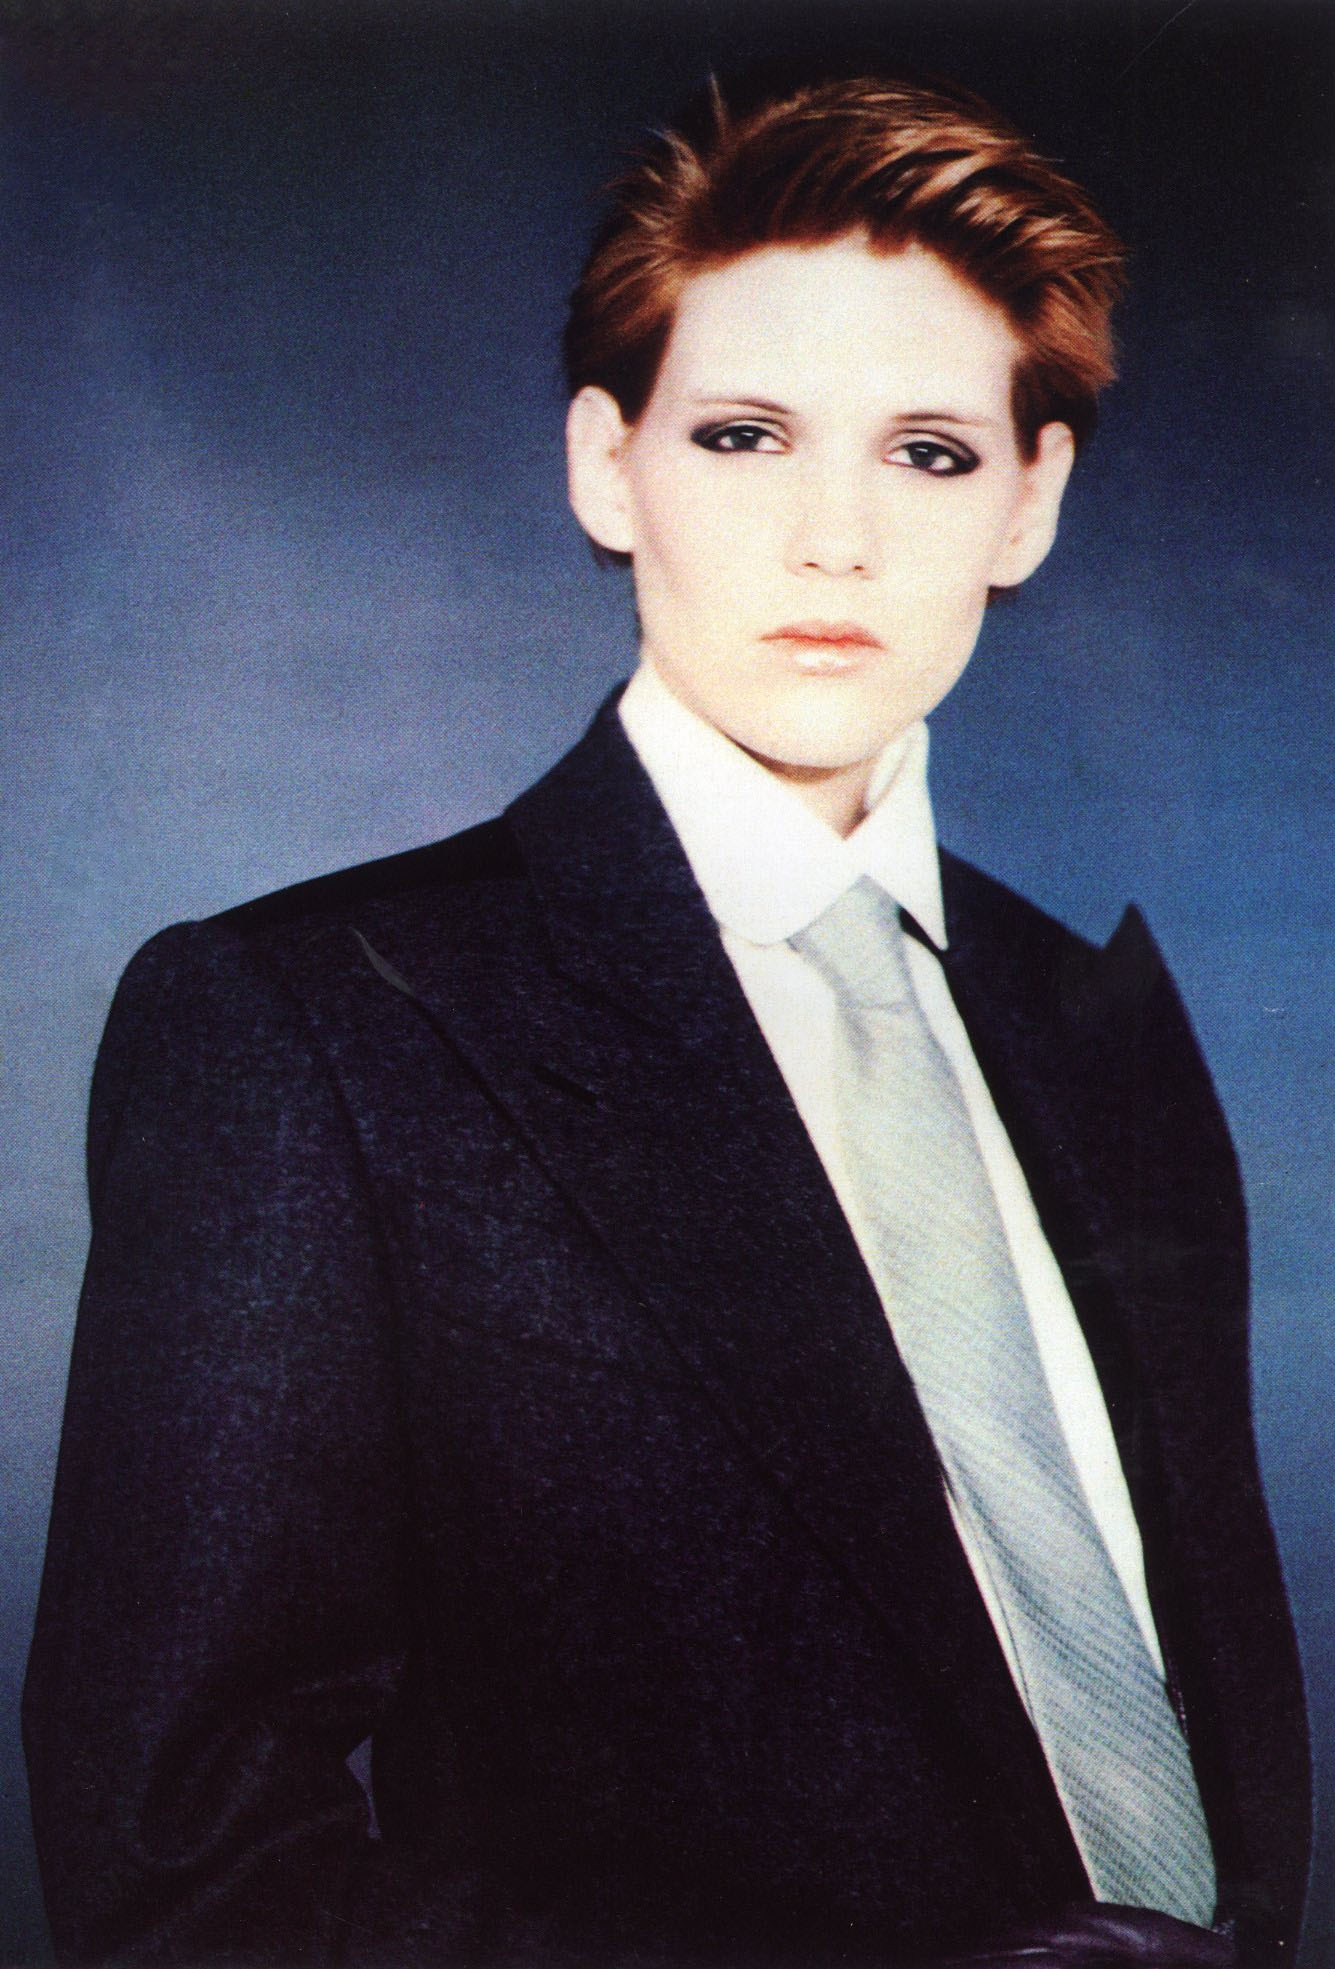 claude montana photography paolo roversi marie claire bis n 8 autumn winter 1984